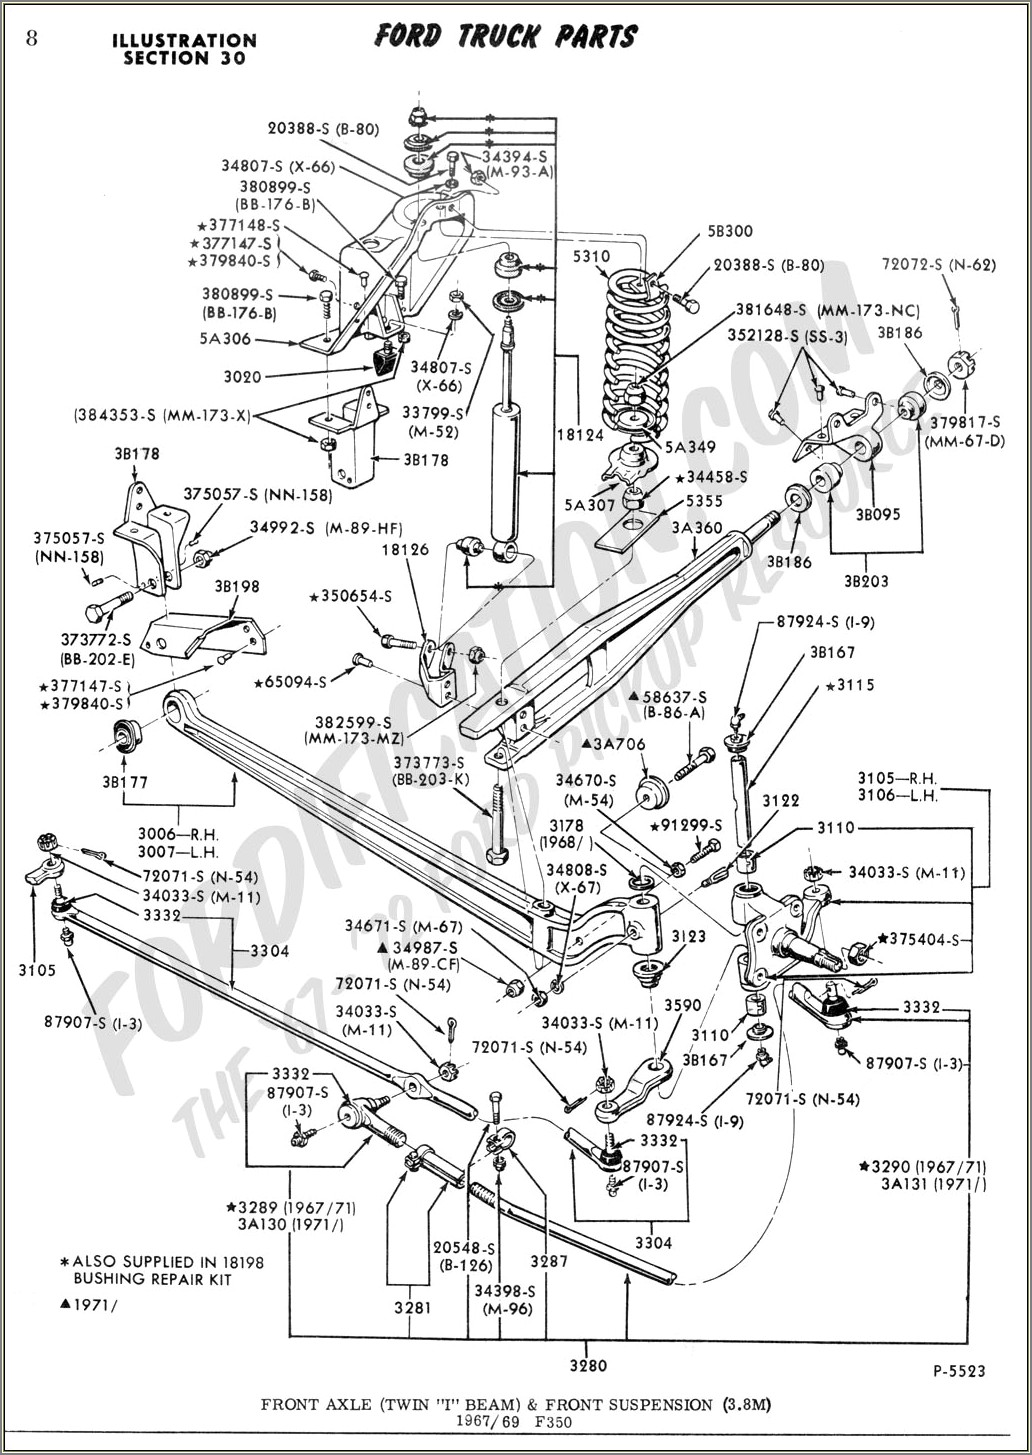 2002 Ford F150 Front Suspension Diagram